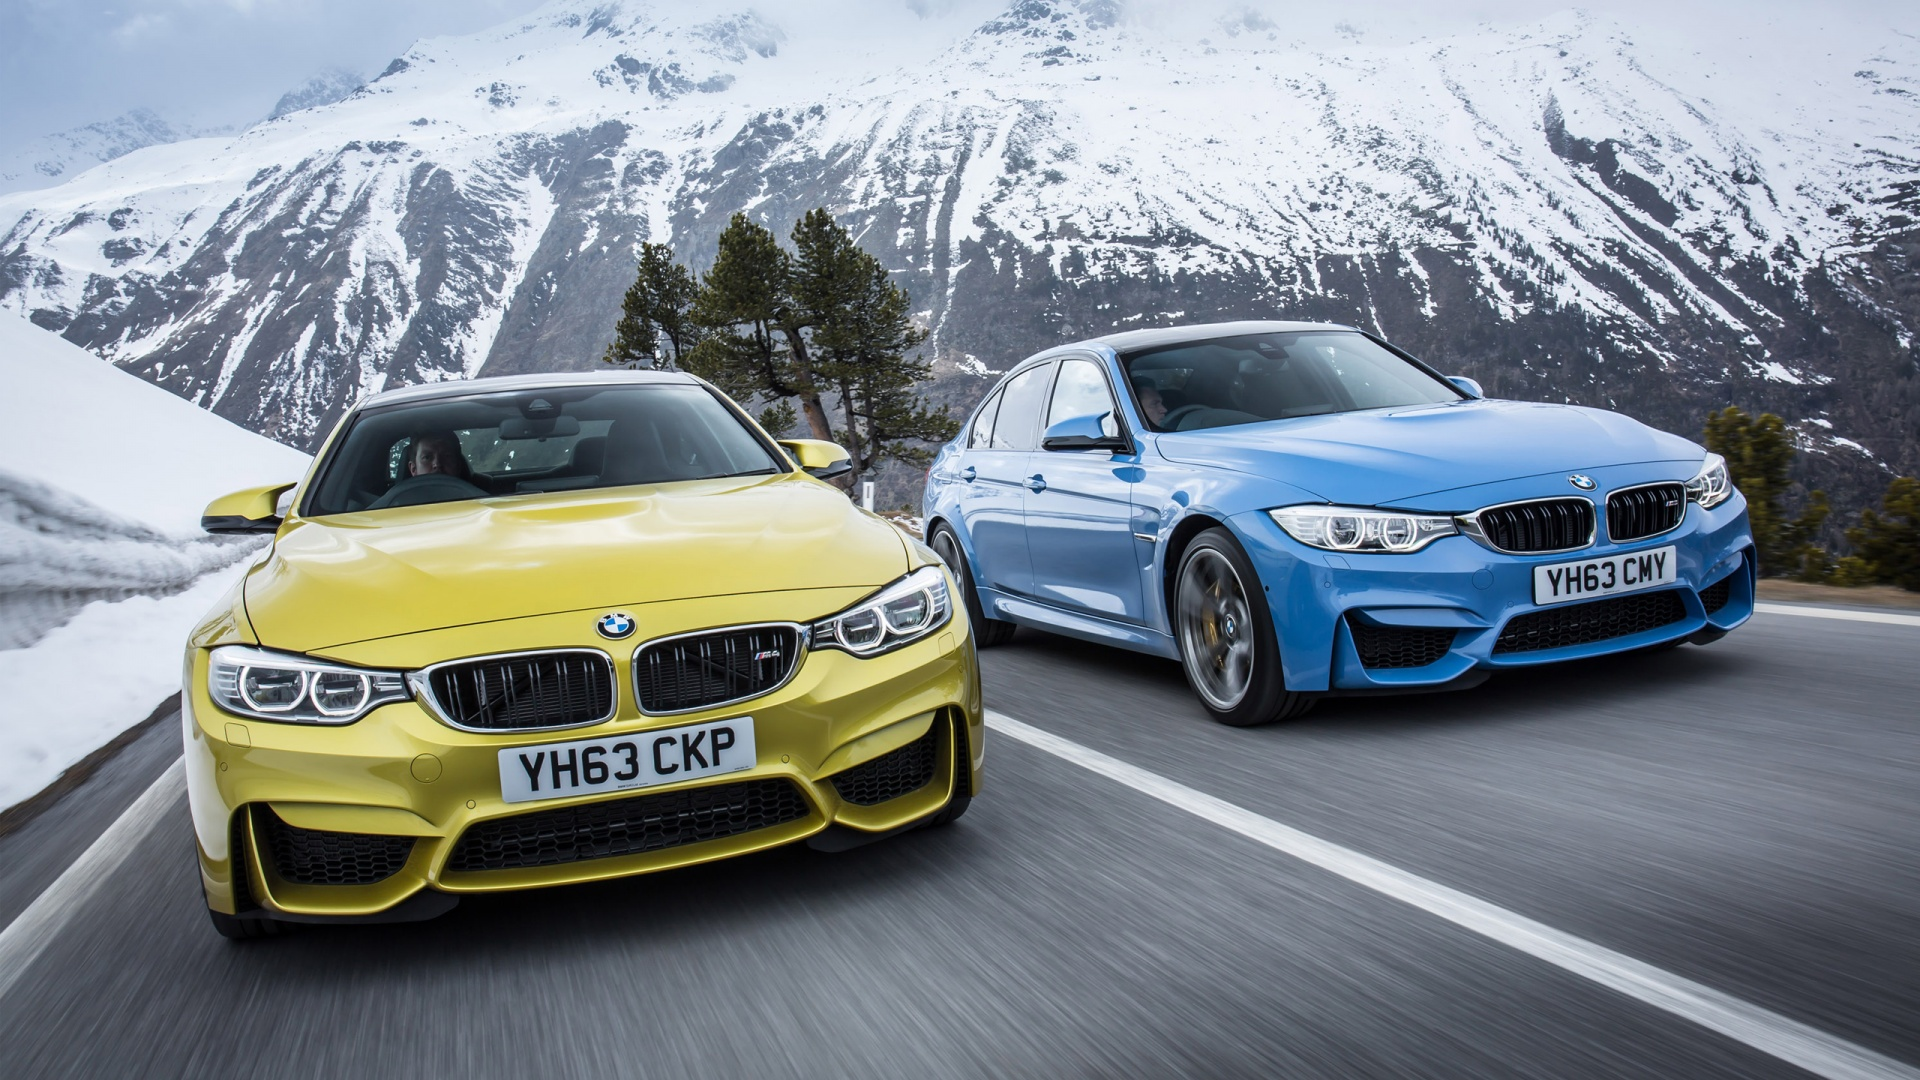 2014 BMW M4 Coupe UK Wallpaper HD Car Wallpapers 1920x1080